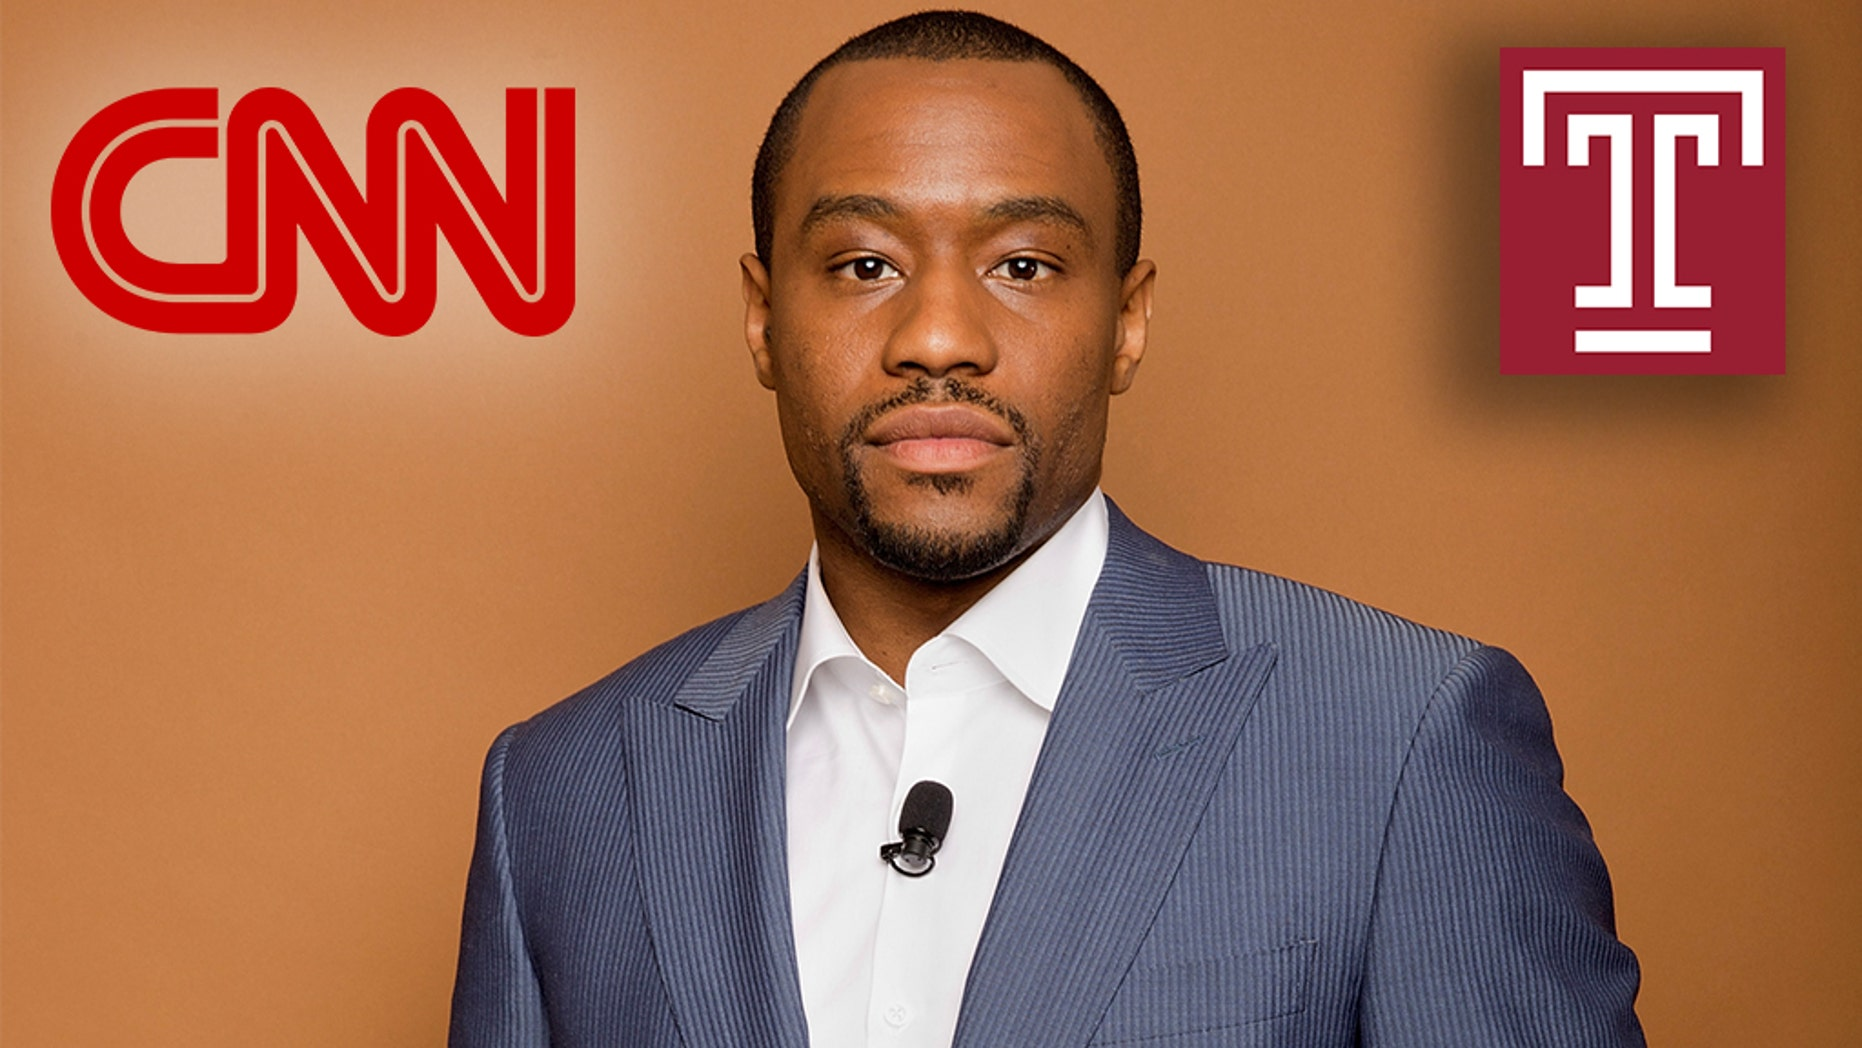 temple university stands by marc lamont hill after cnn fires him for